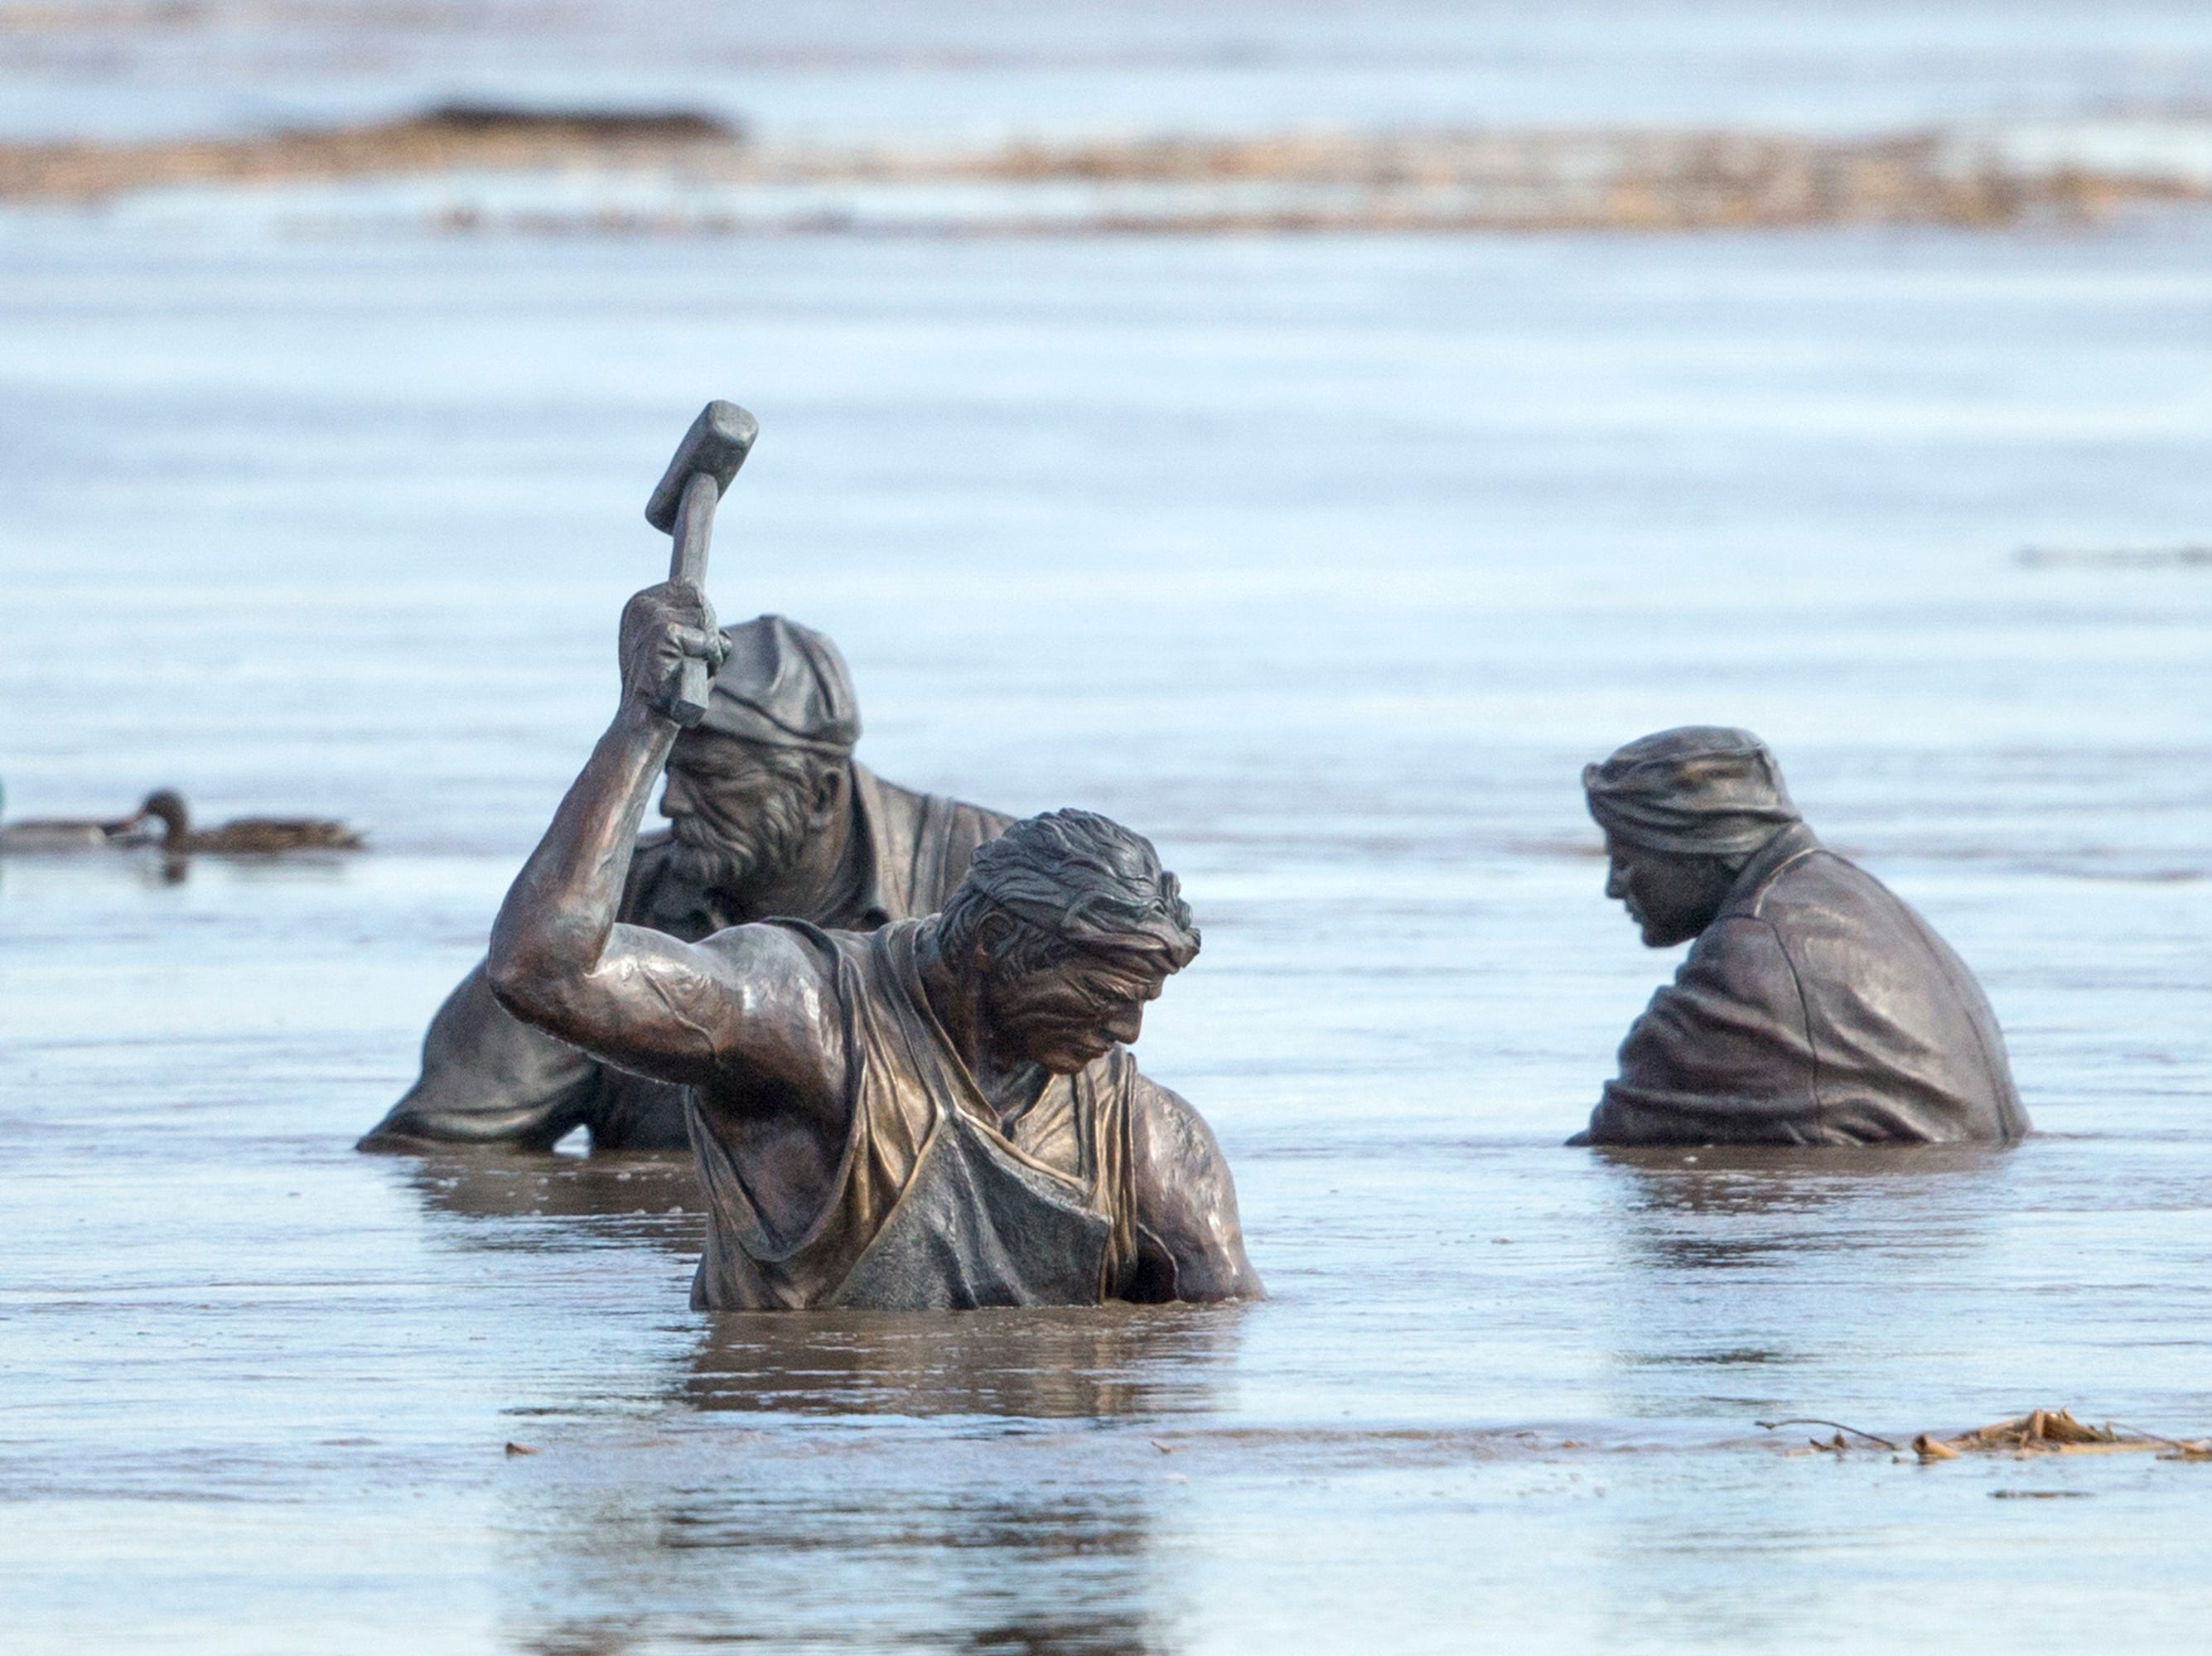 Ducks swim nearby as the high waters of the Missouri River almost submerge figures in the Monument to Labor statue by Matthew J. Placzek, in Omaha, Neb., Saturday, March 16, 2019. Thousands of people have been urged to evacuate along eastern Nebraska rivers as a massive late-winter storm has pushed streams and rivers out of their banks throughout the Midwest. (AP Photo/Nati Harnik)